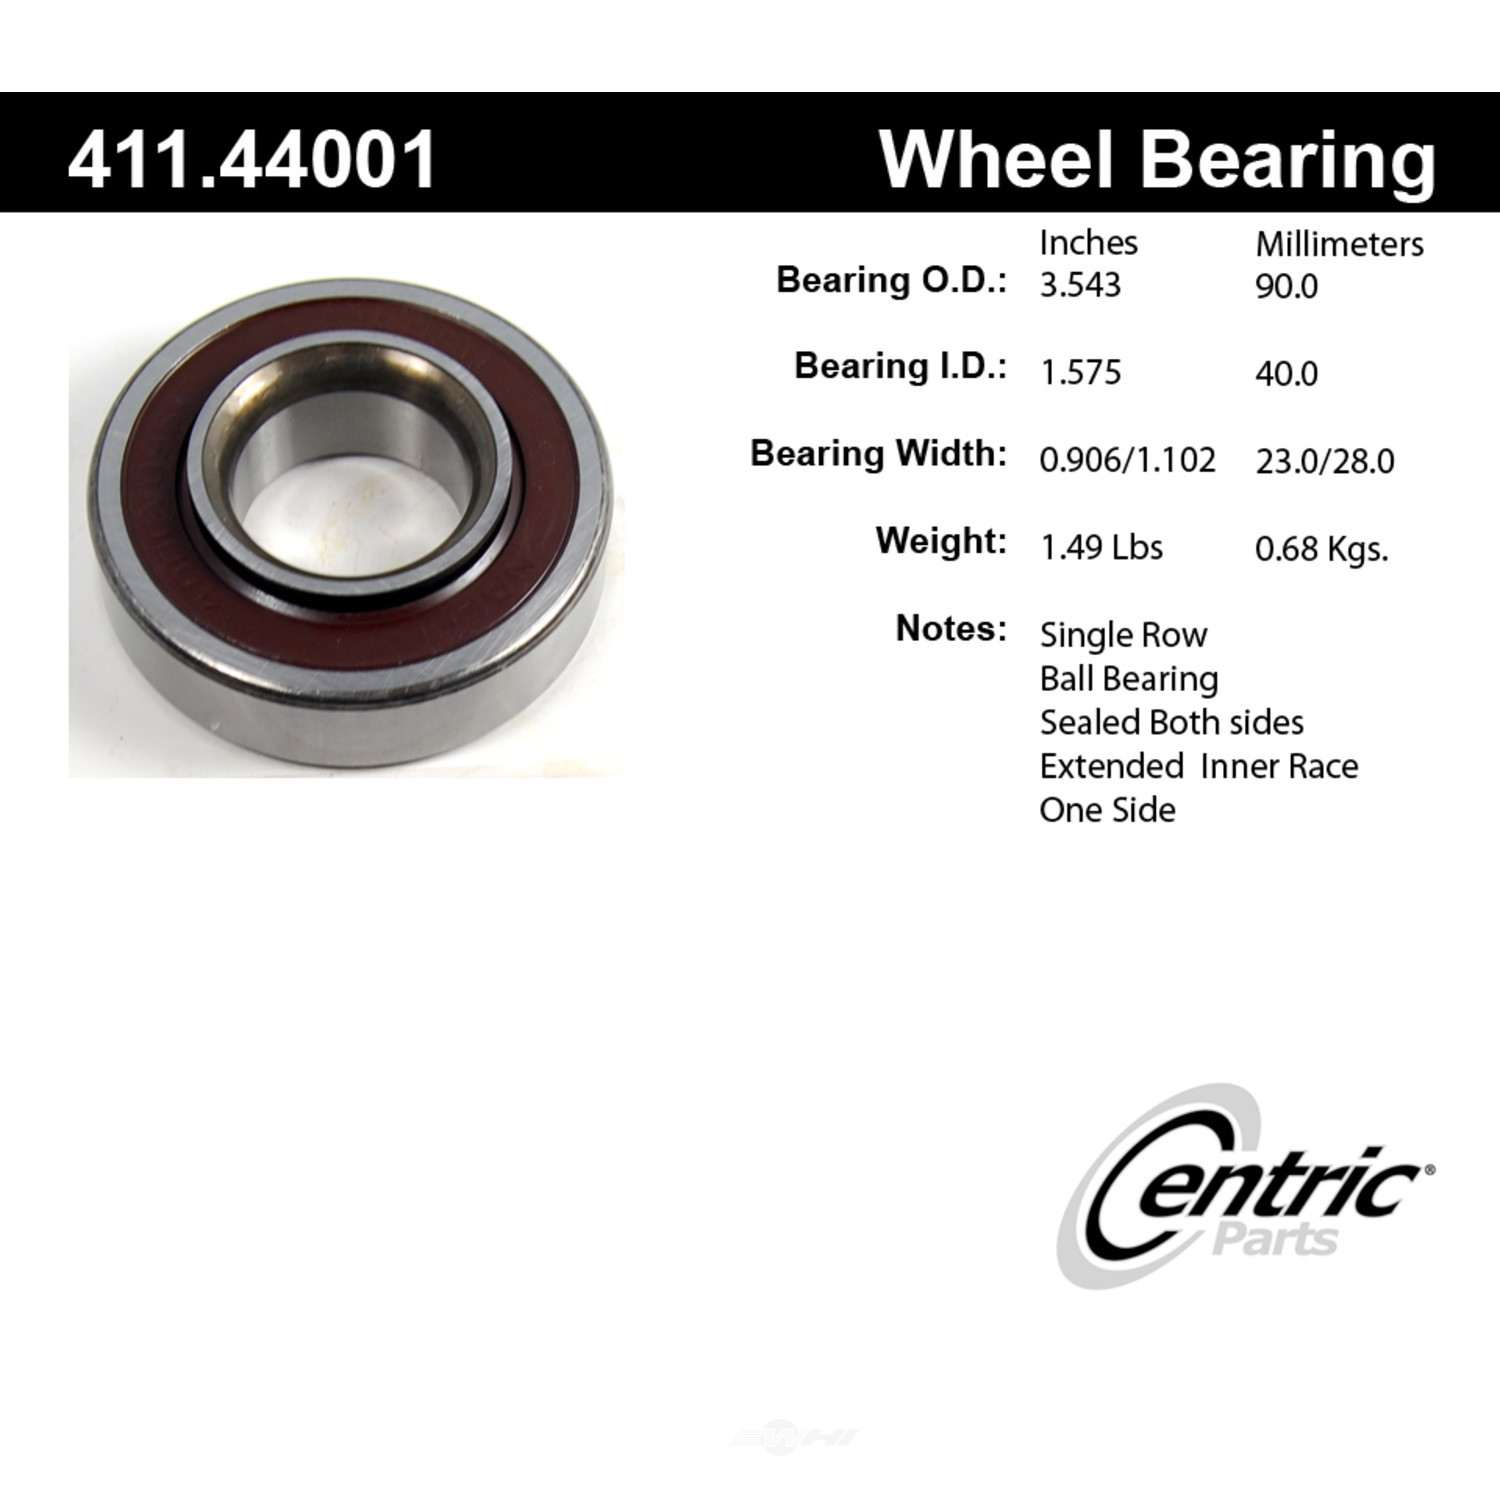 CENTRIC PARTS - Premium Axle Shaft Bearing Assembly - CEC 411.44001